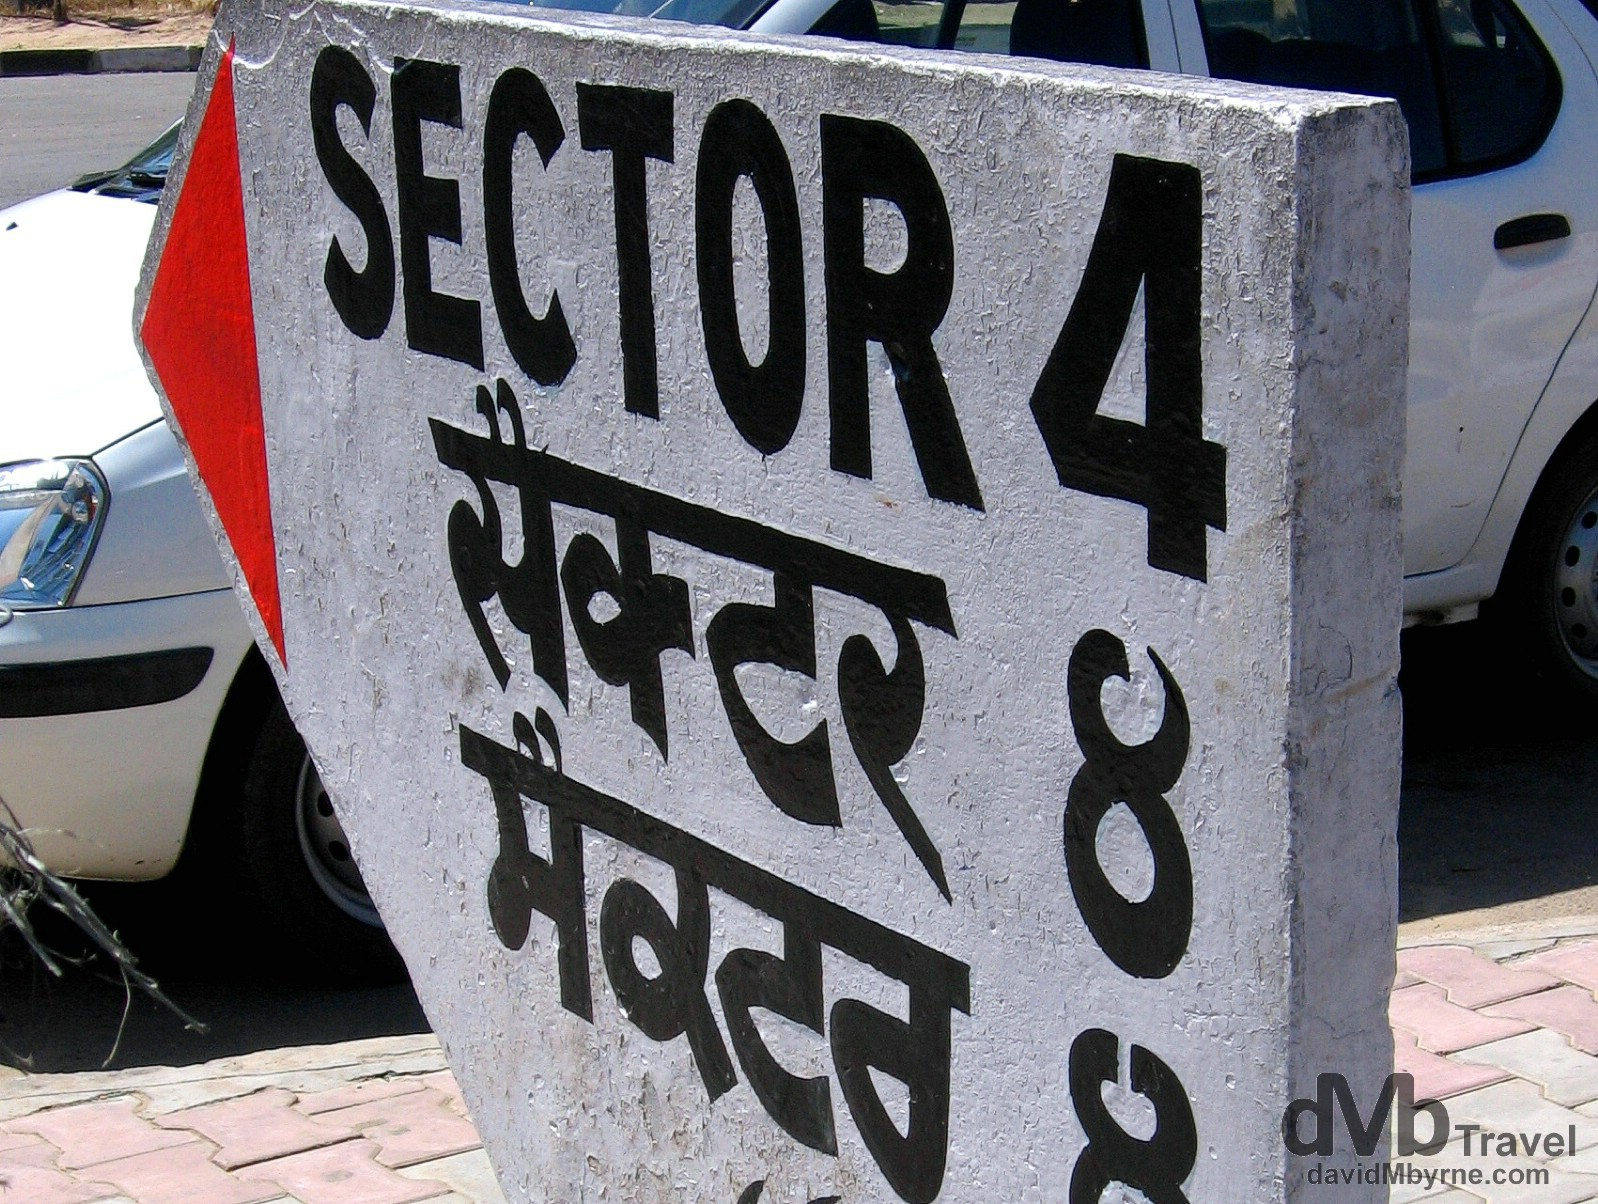 Sector signage in the planned city of Chandigarh, Punjab, India. March 23, 2008.